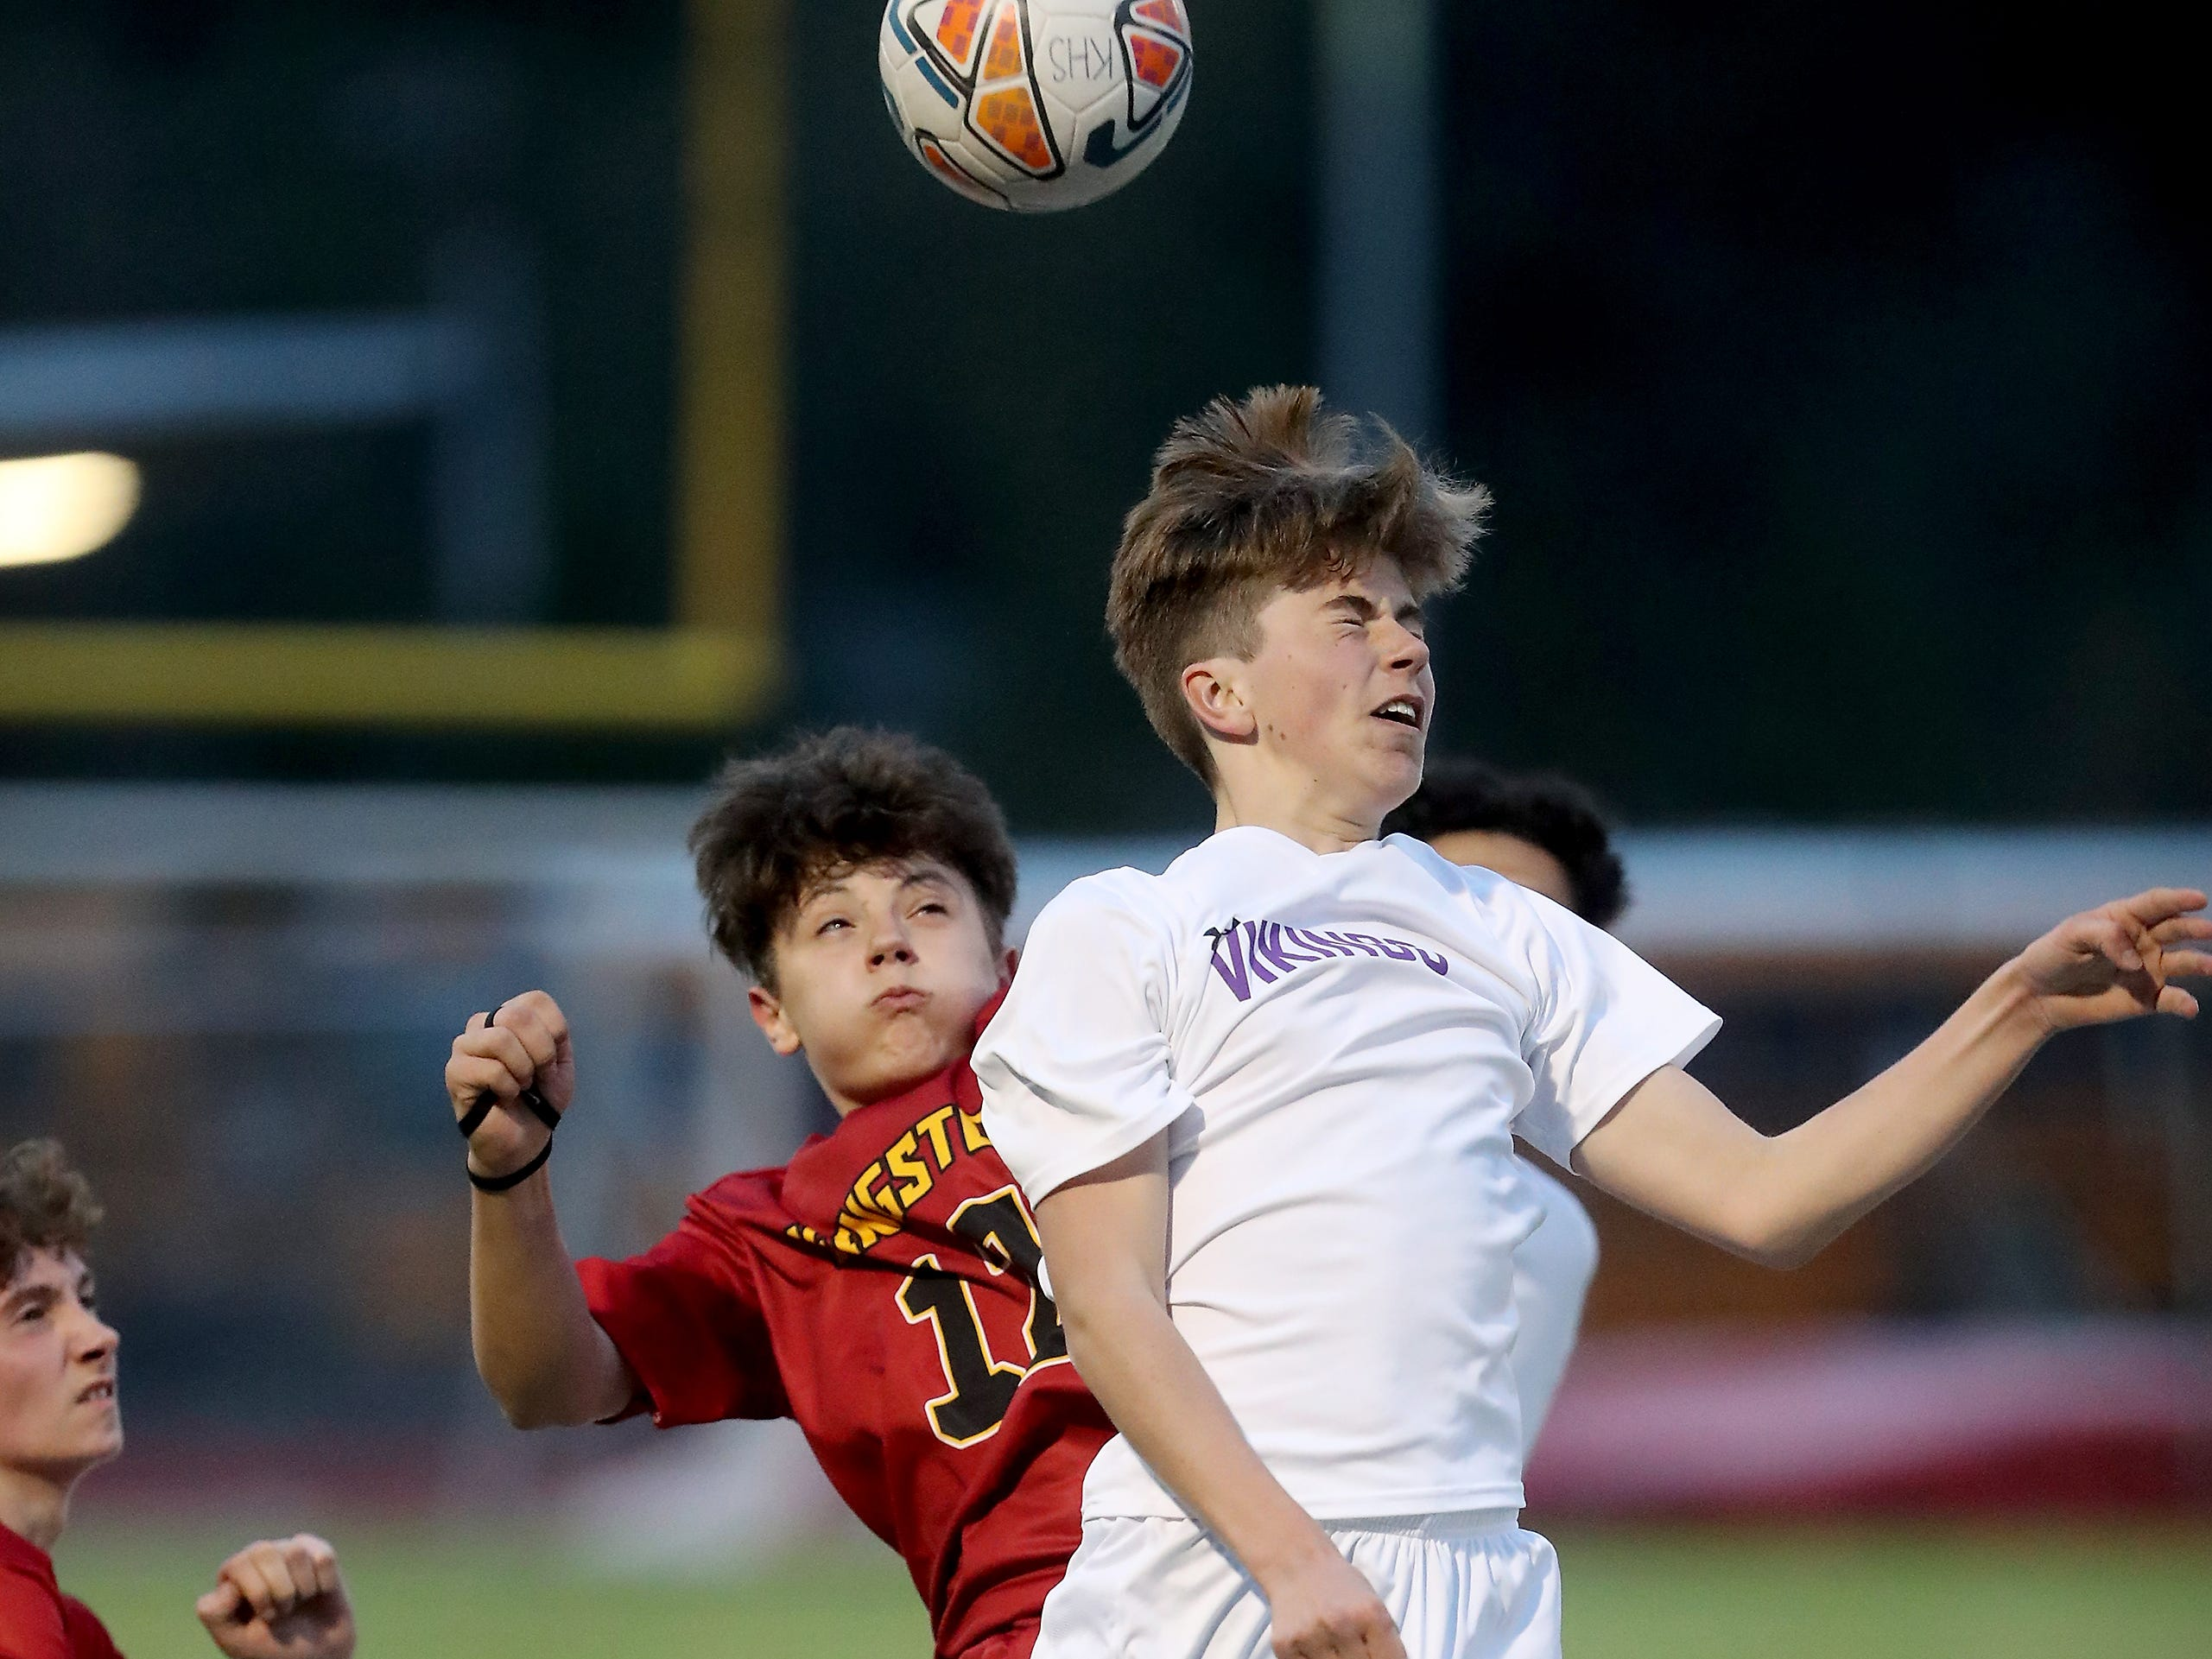 North Kitsap's Aurthur Stalin (front) and Kingston's Kaden Schaefer Soccer go up for a header during ther game in Kingston on Tuesday, April 9, 2019.